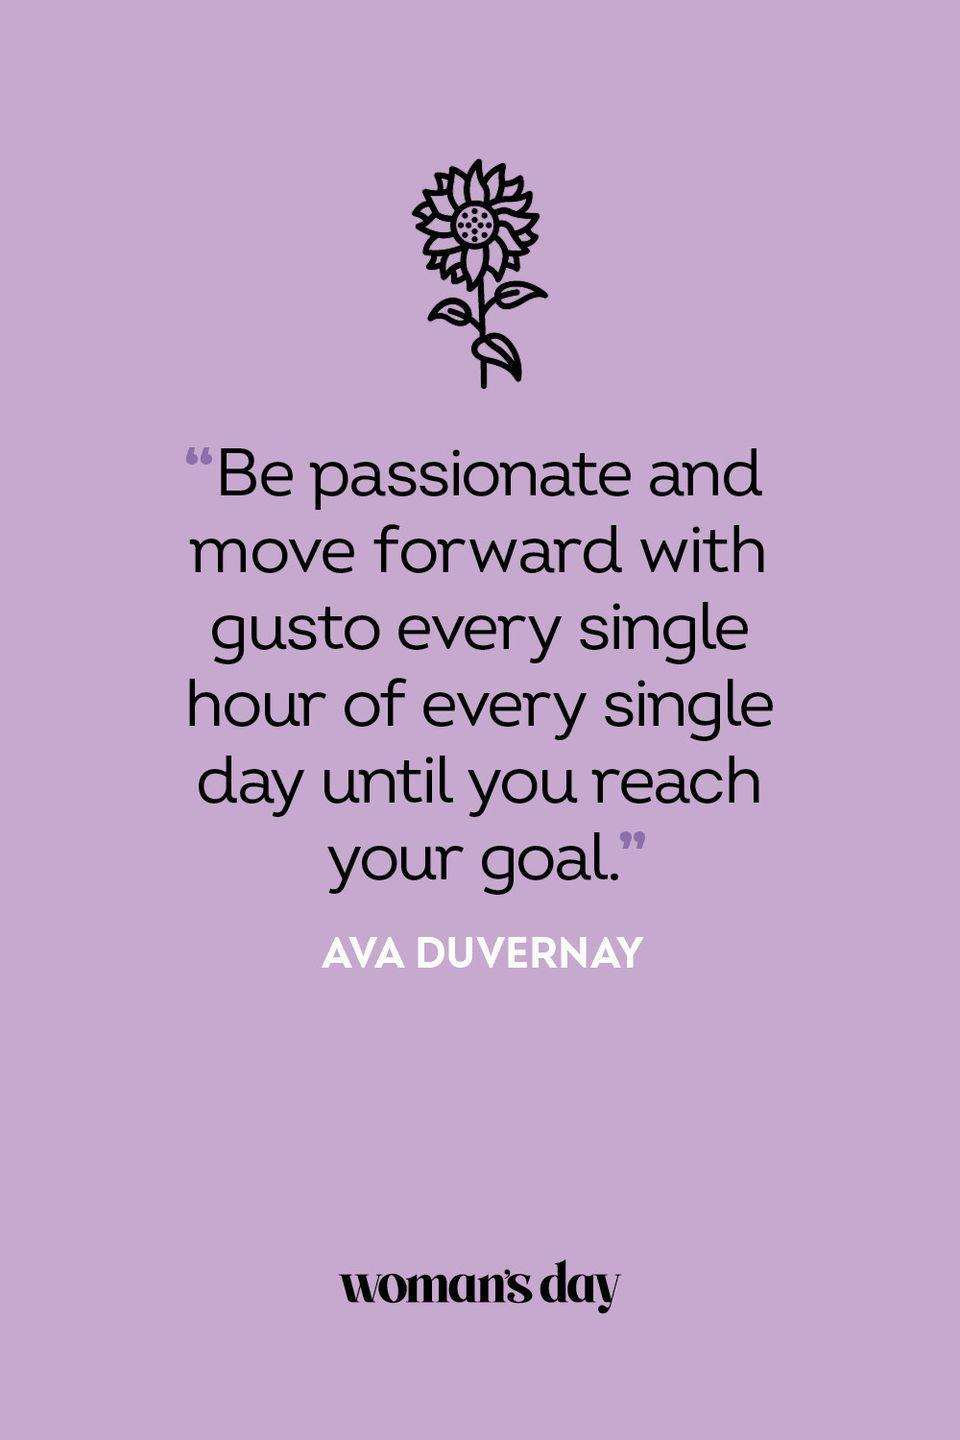 <p>Be passionate and move forward with gusto every single hour of every single day until you reach your goal.</p>